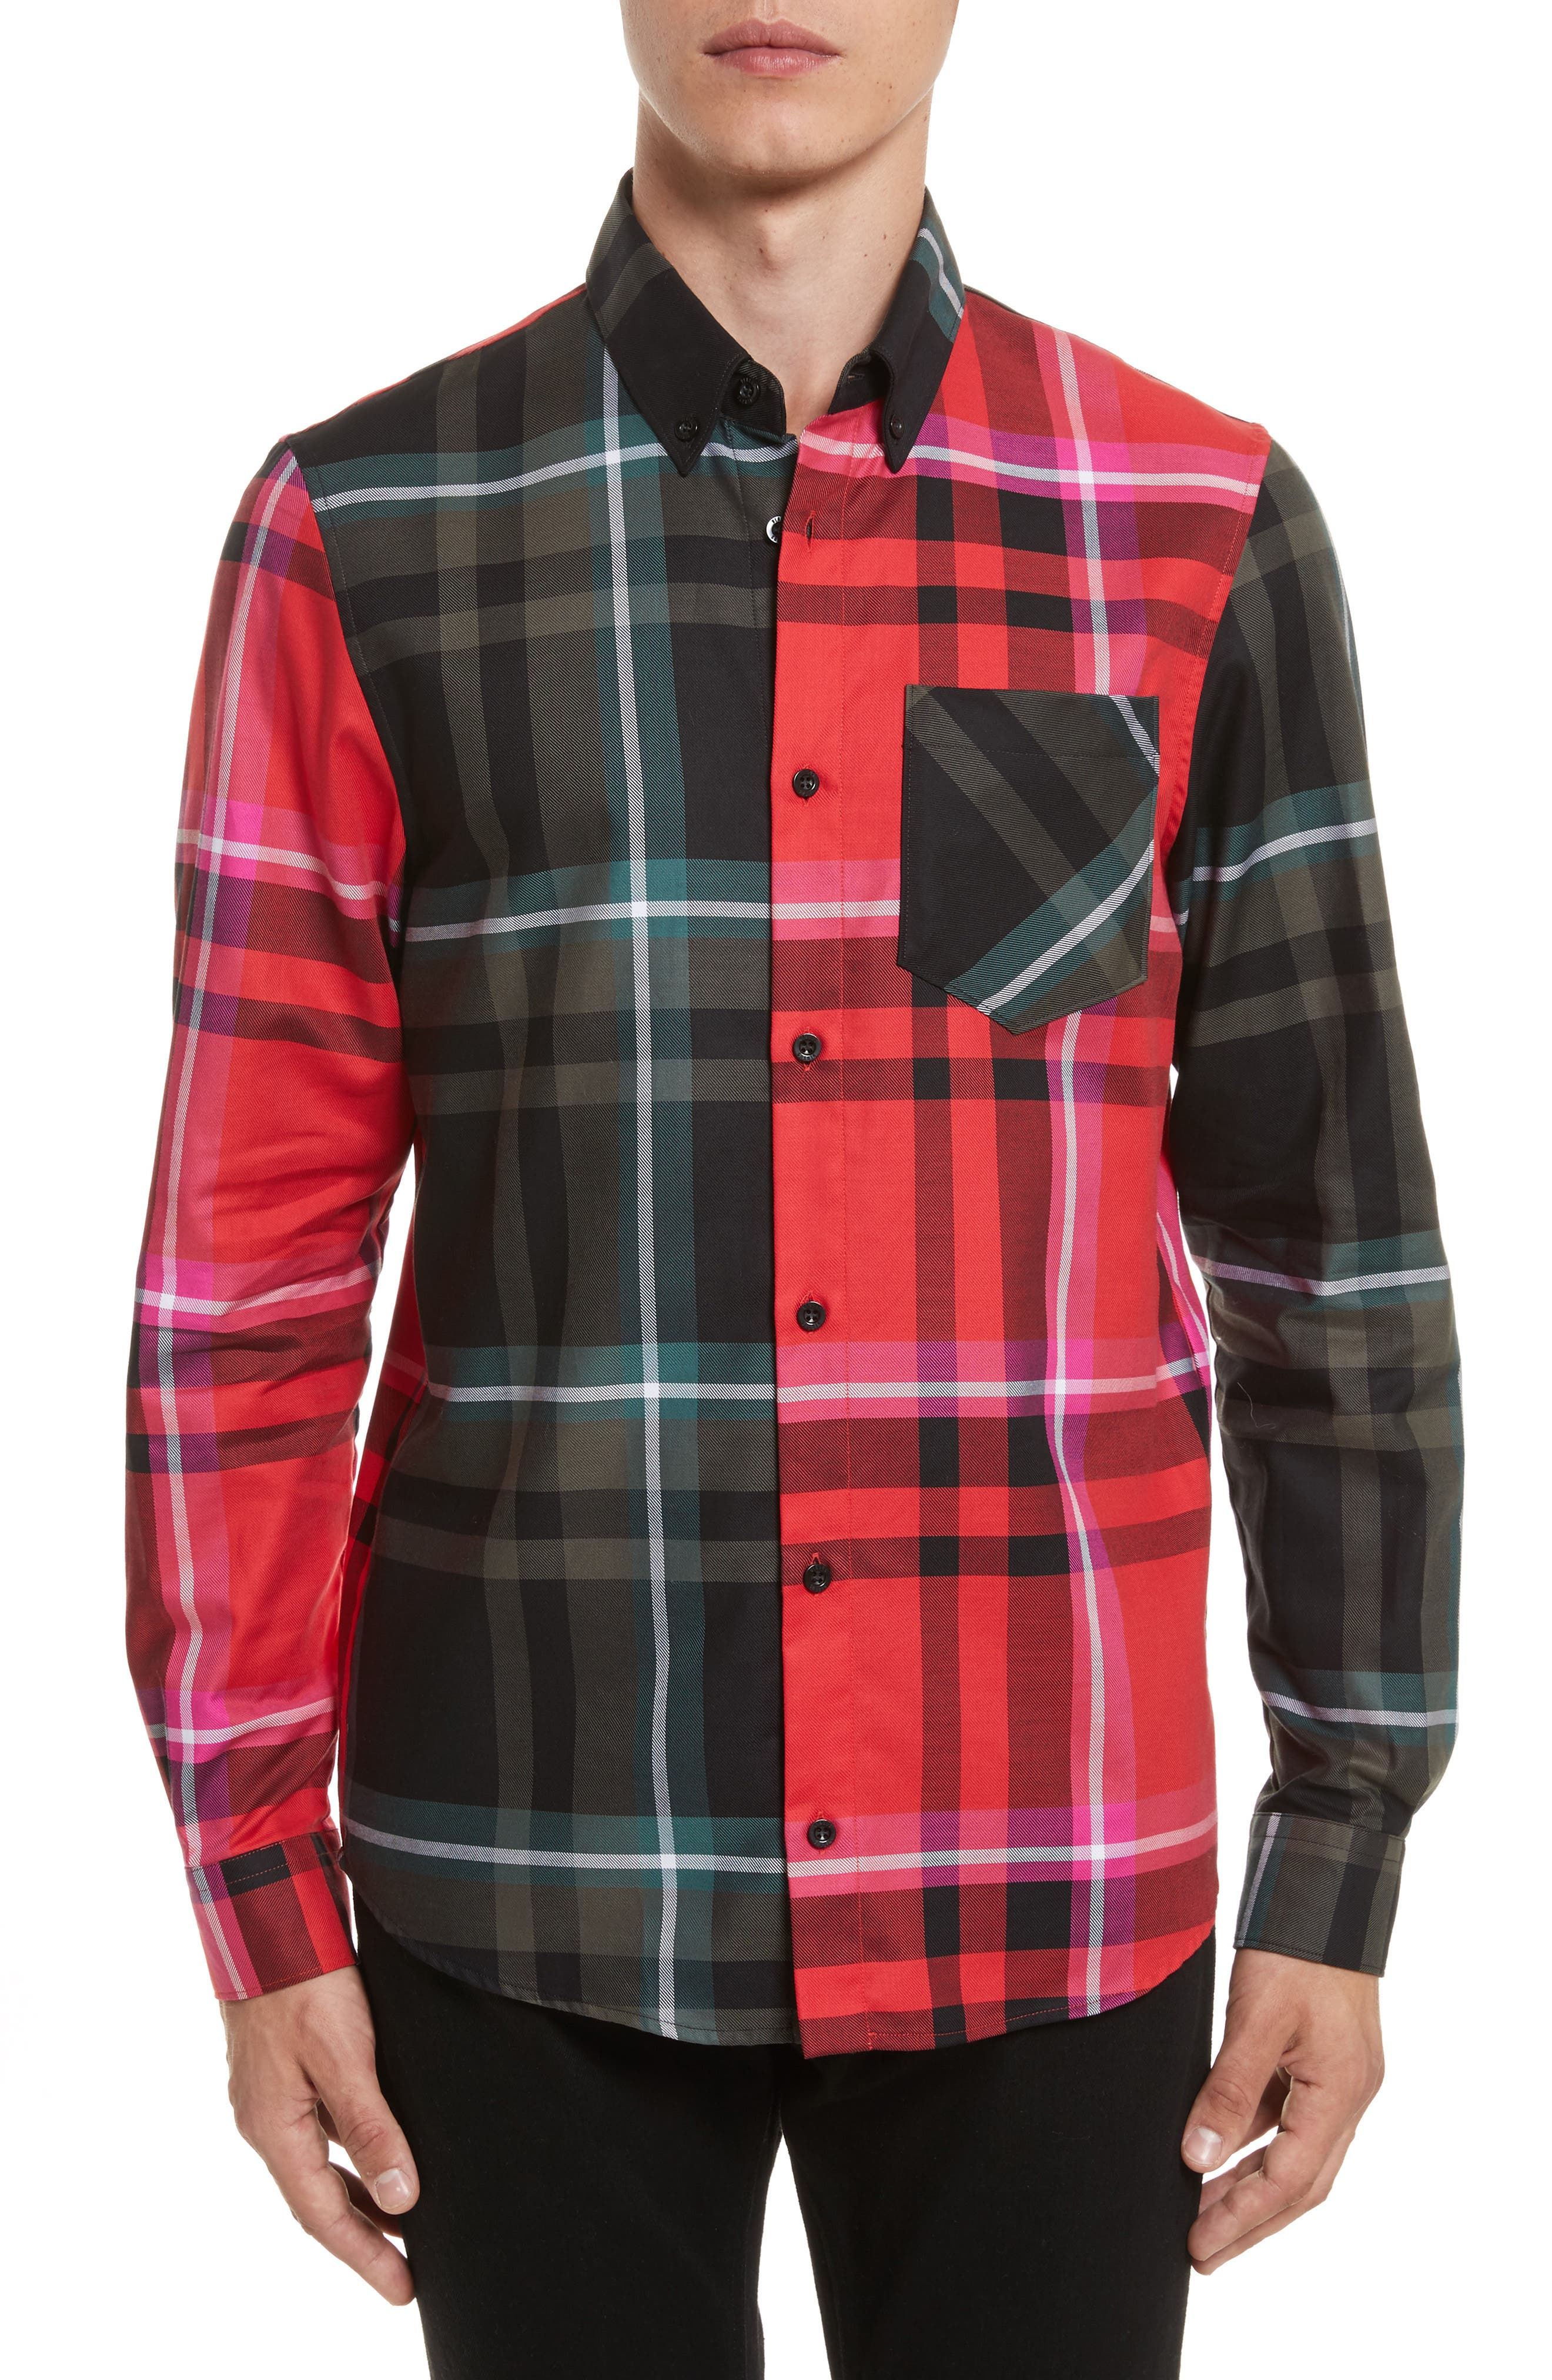 VERSUS by Versace Plaid Woven Shirt,                         Main,                         color, Red Multi